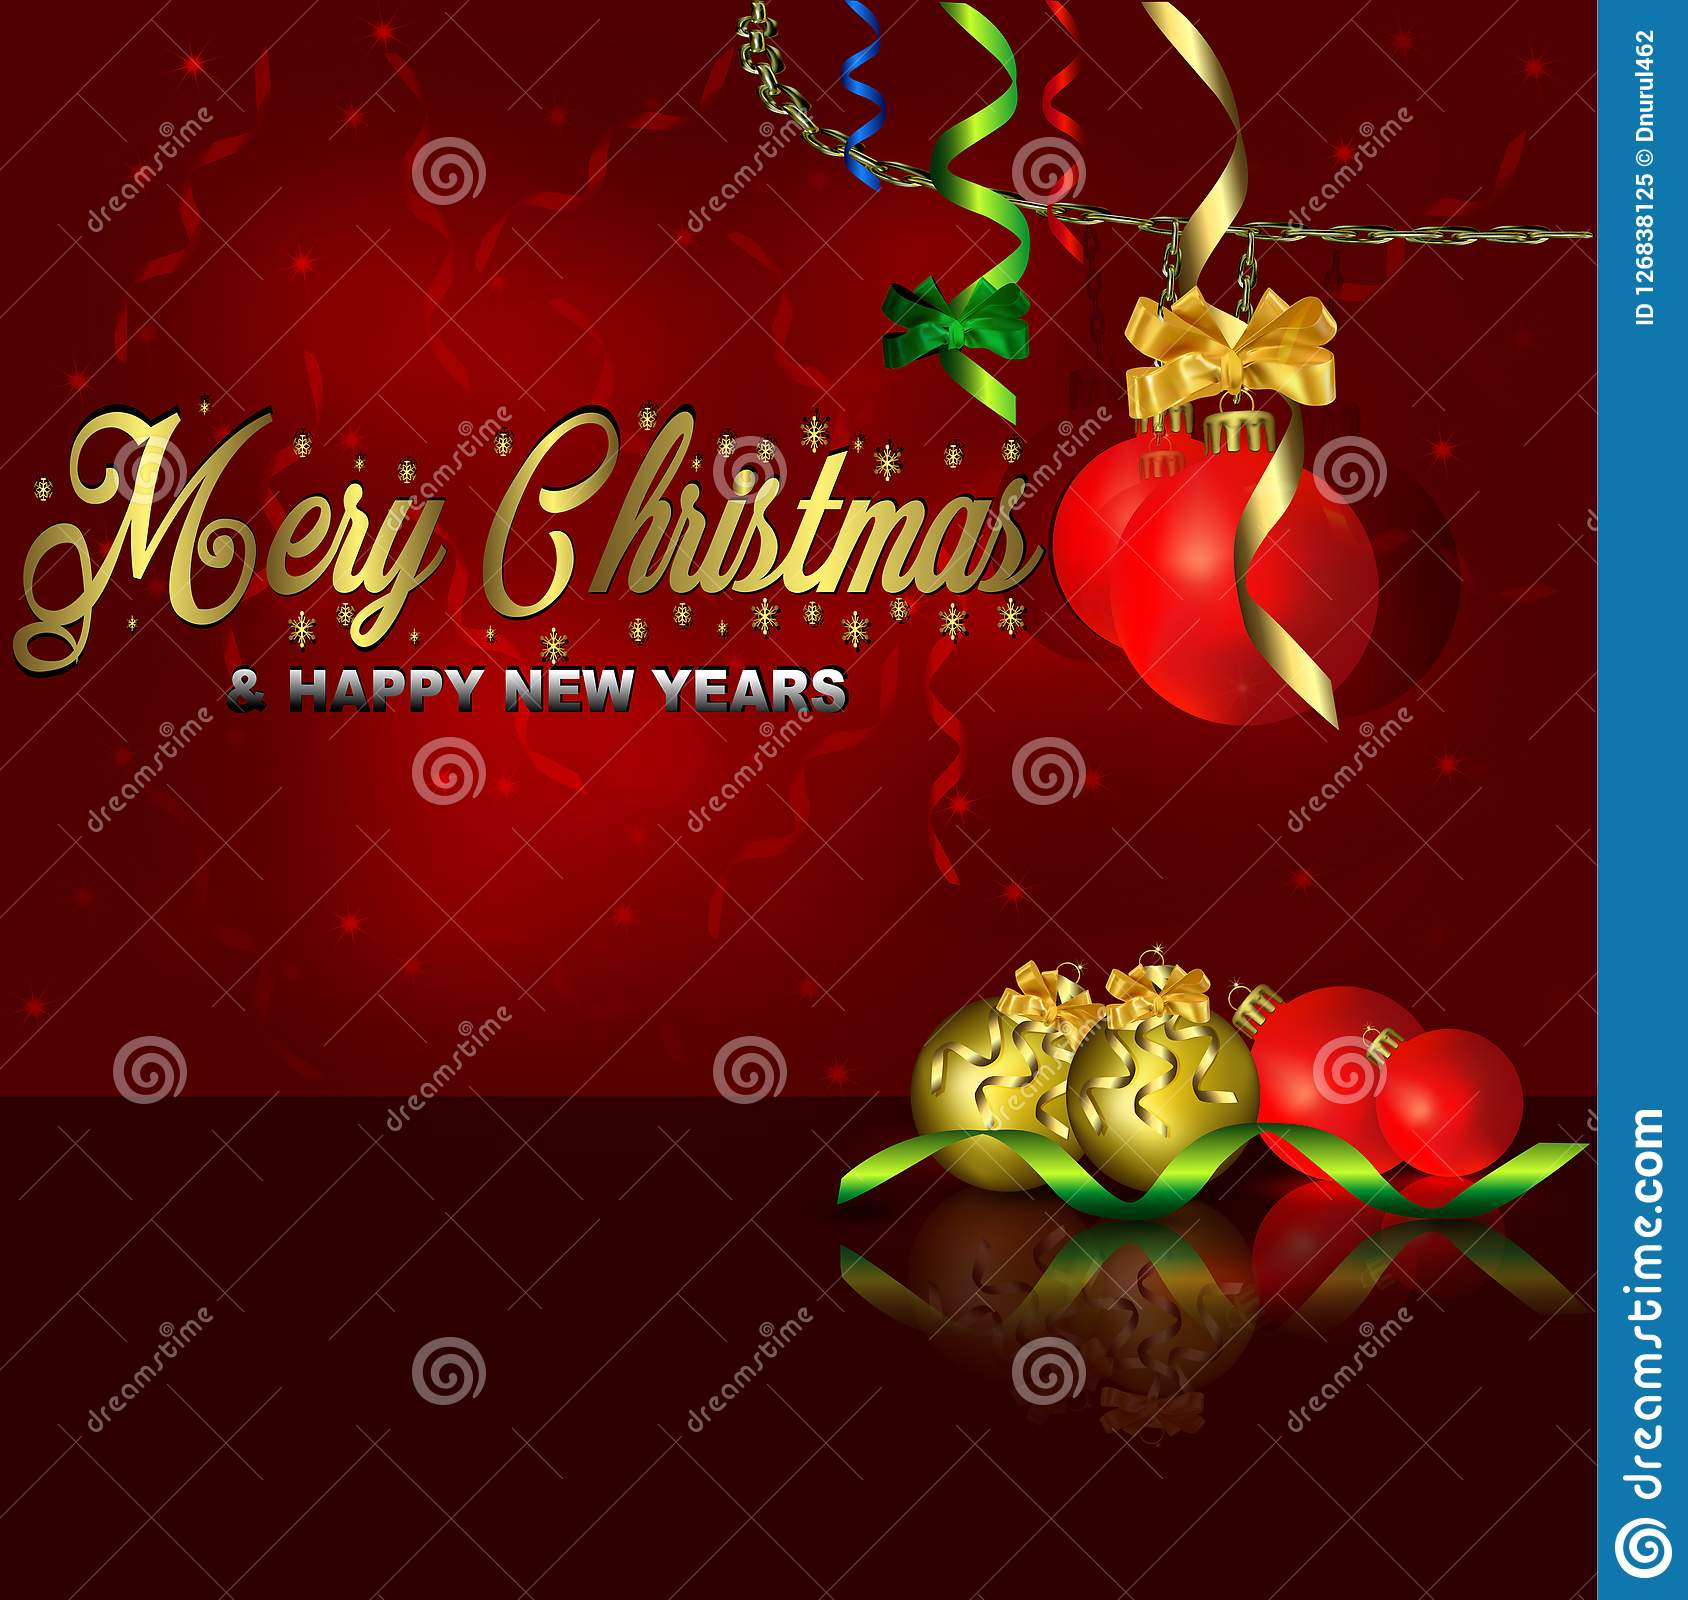 Mery Christmas.Background Mery Christmas Stock Illustration Illustration